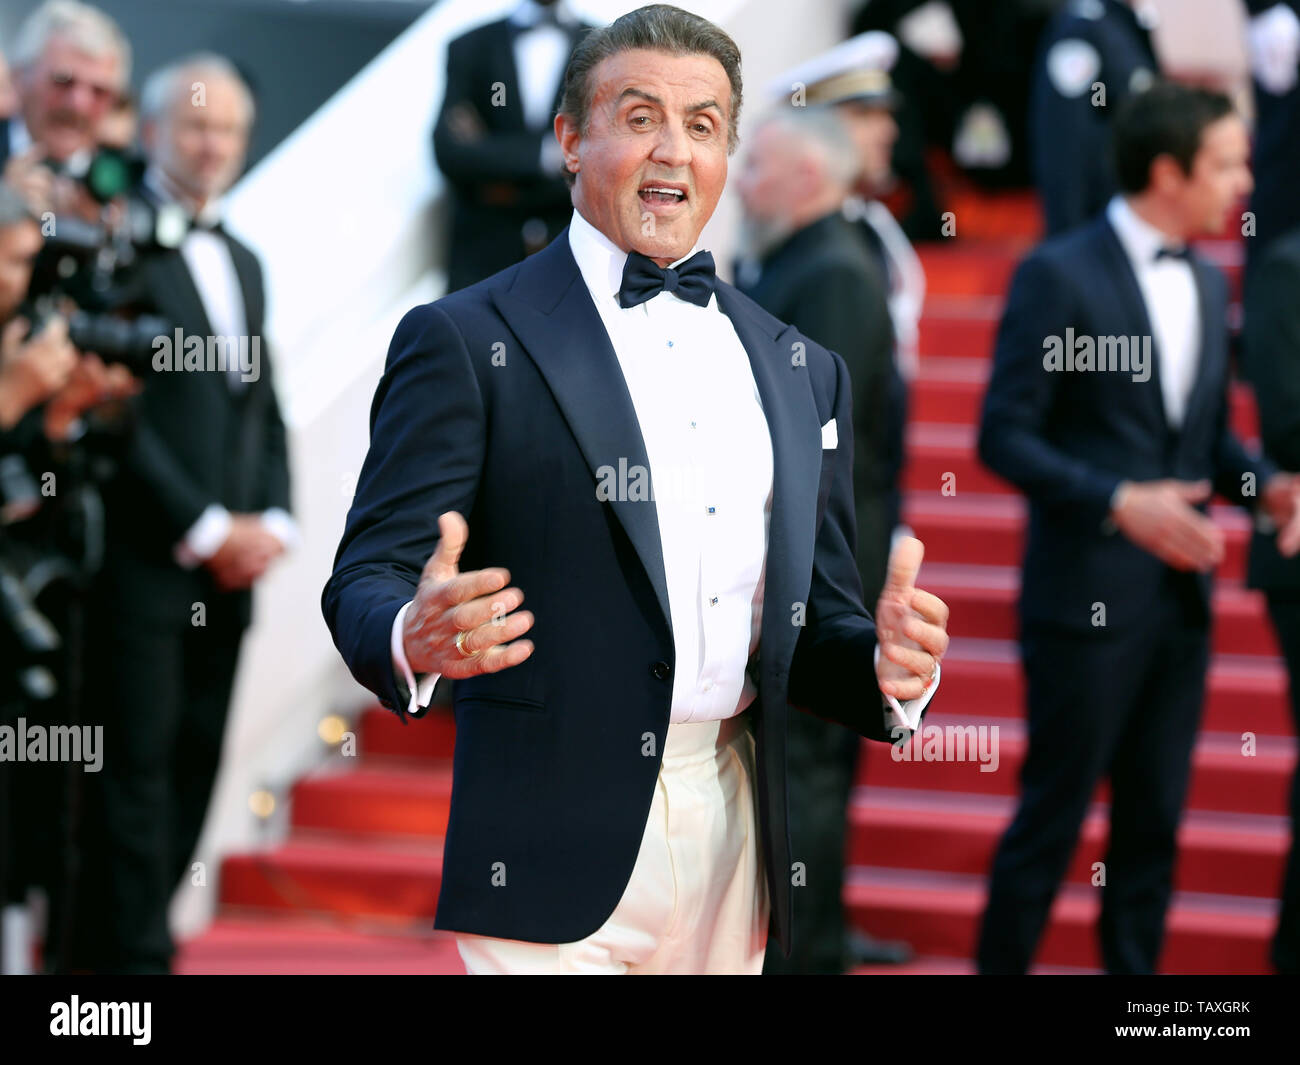 CANNES, FRANCE - MAY 25: Sylvester Stallone attends the Closing Ceremony of the 72nd Cannes Film Festival (Credit: Mickael Chavet/Project Daybreak/Ala Stock Photo